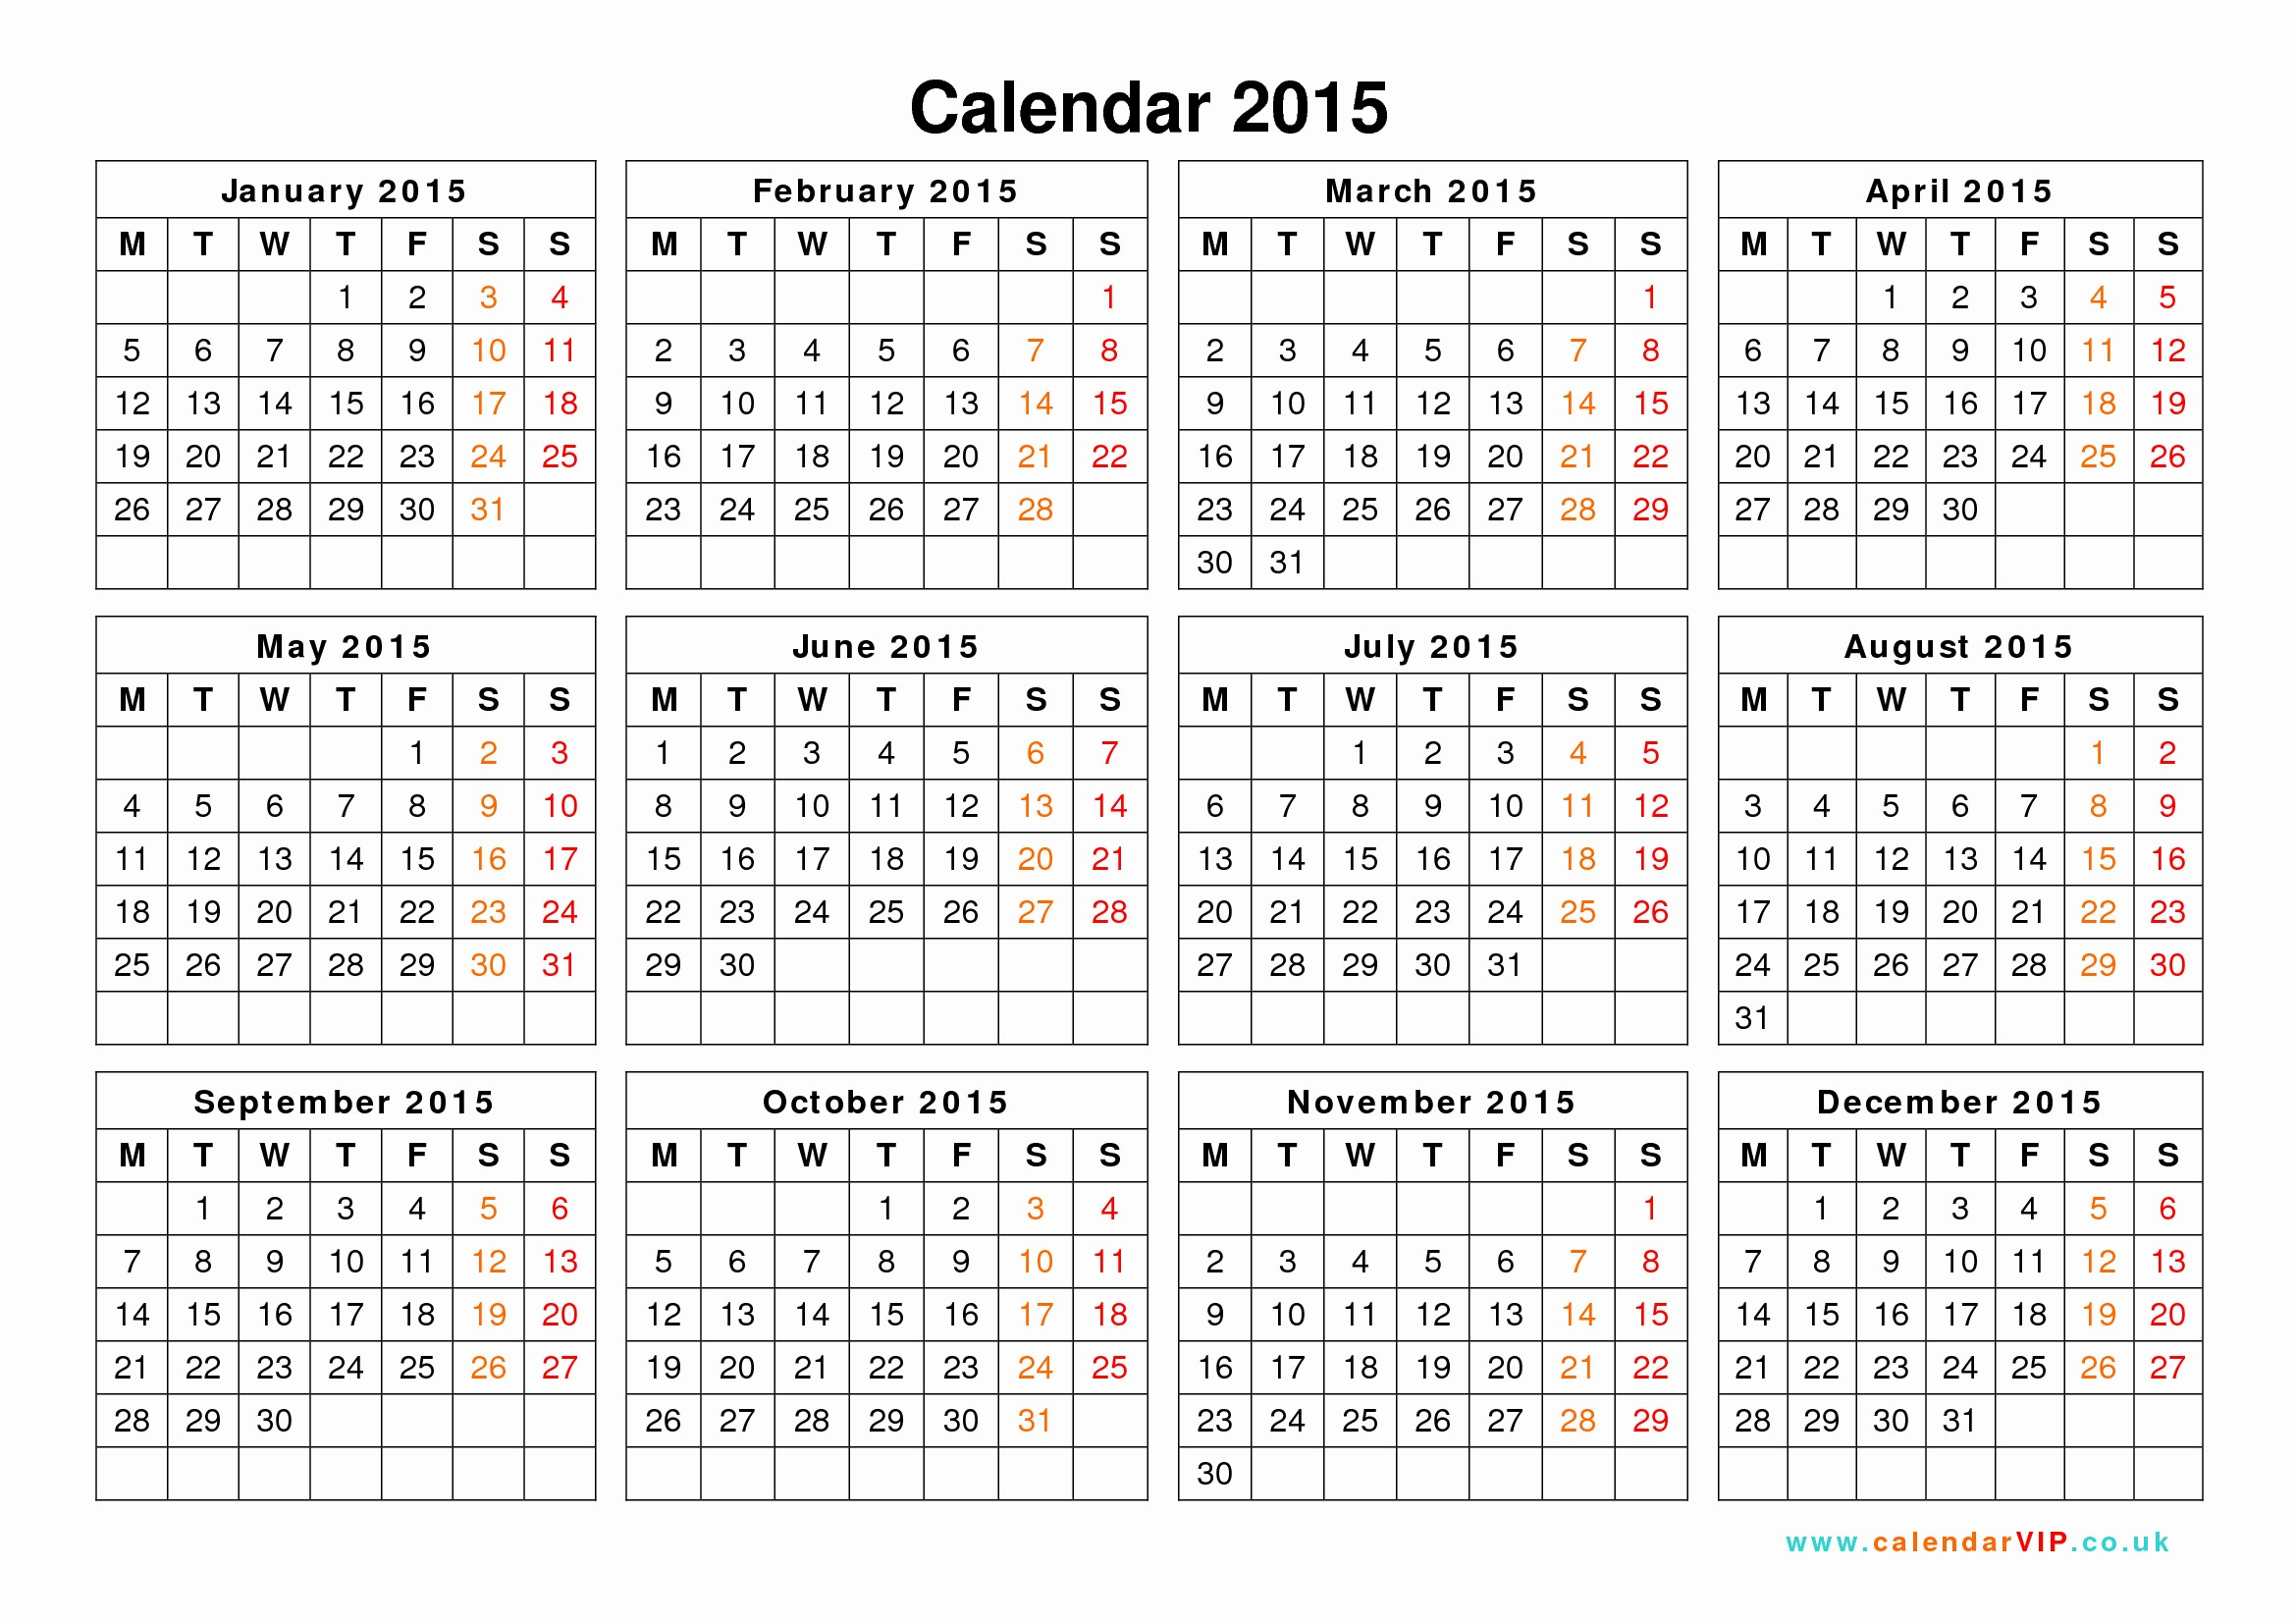 Full Year Calendar Template 2015 Best Of Calendar 2015 Uk Free Yearly Calendar Templates for Uk